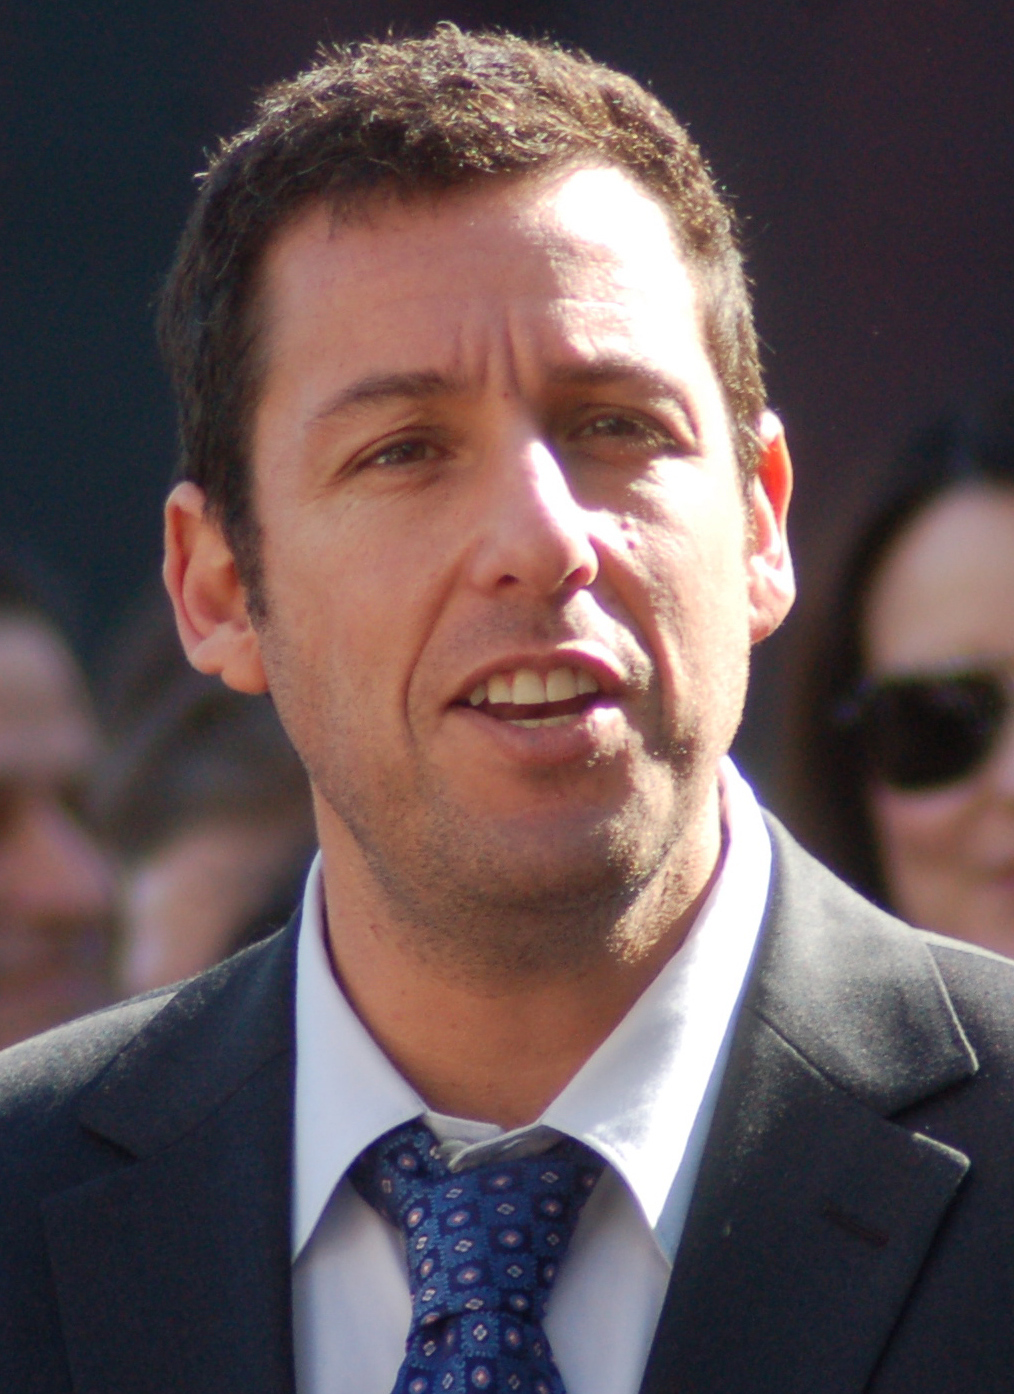 The 50-year old son of father Stanley Sandler and mother Judy Sandler, 177 cm tall Adam Sandler in 2017 photo